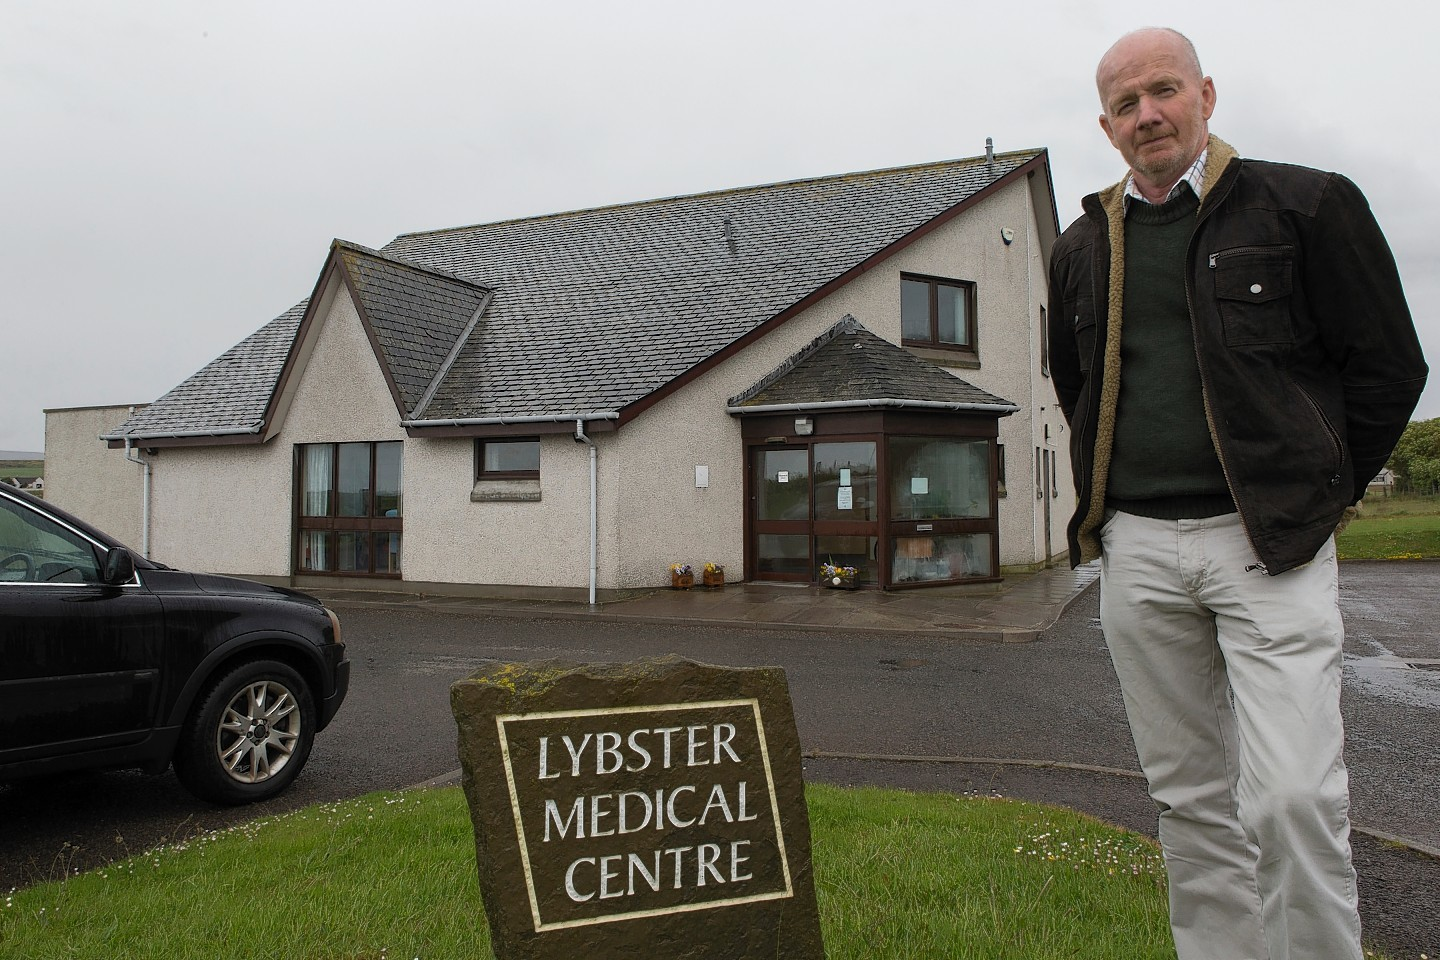 Jim Macgregor, chairman of Latheron, Lybster and Clyth Community Council